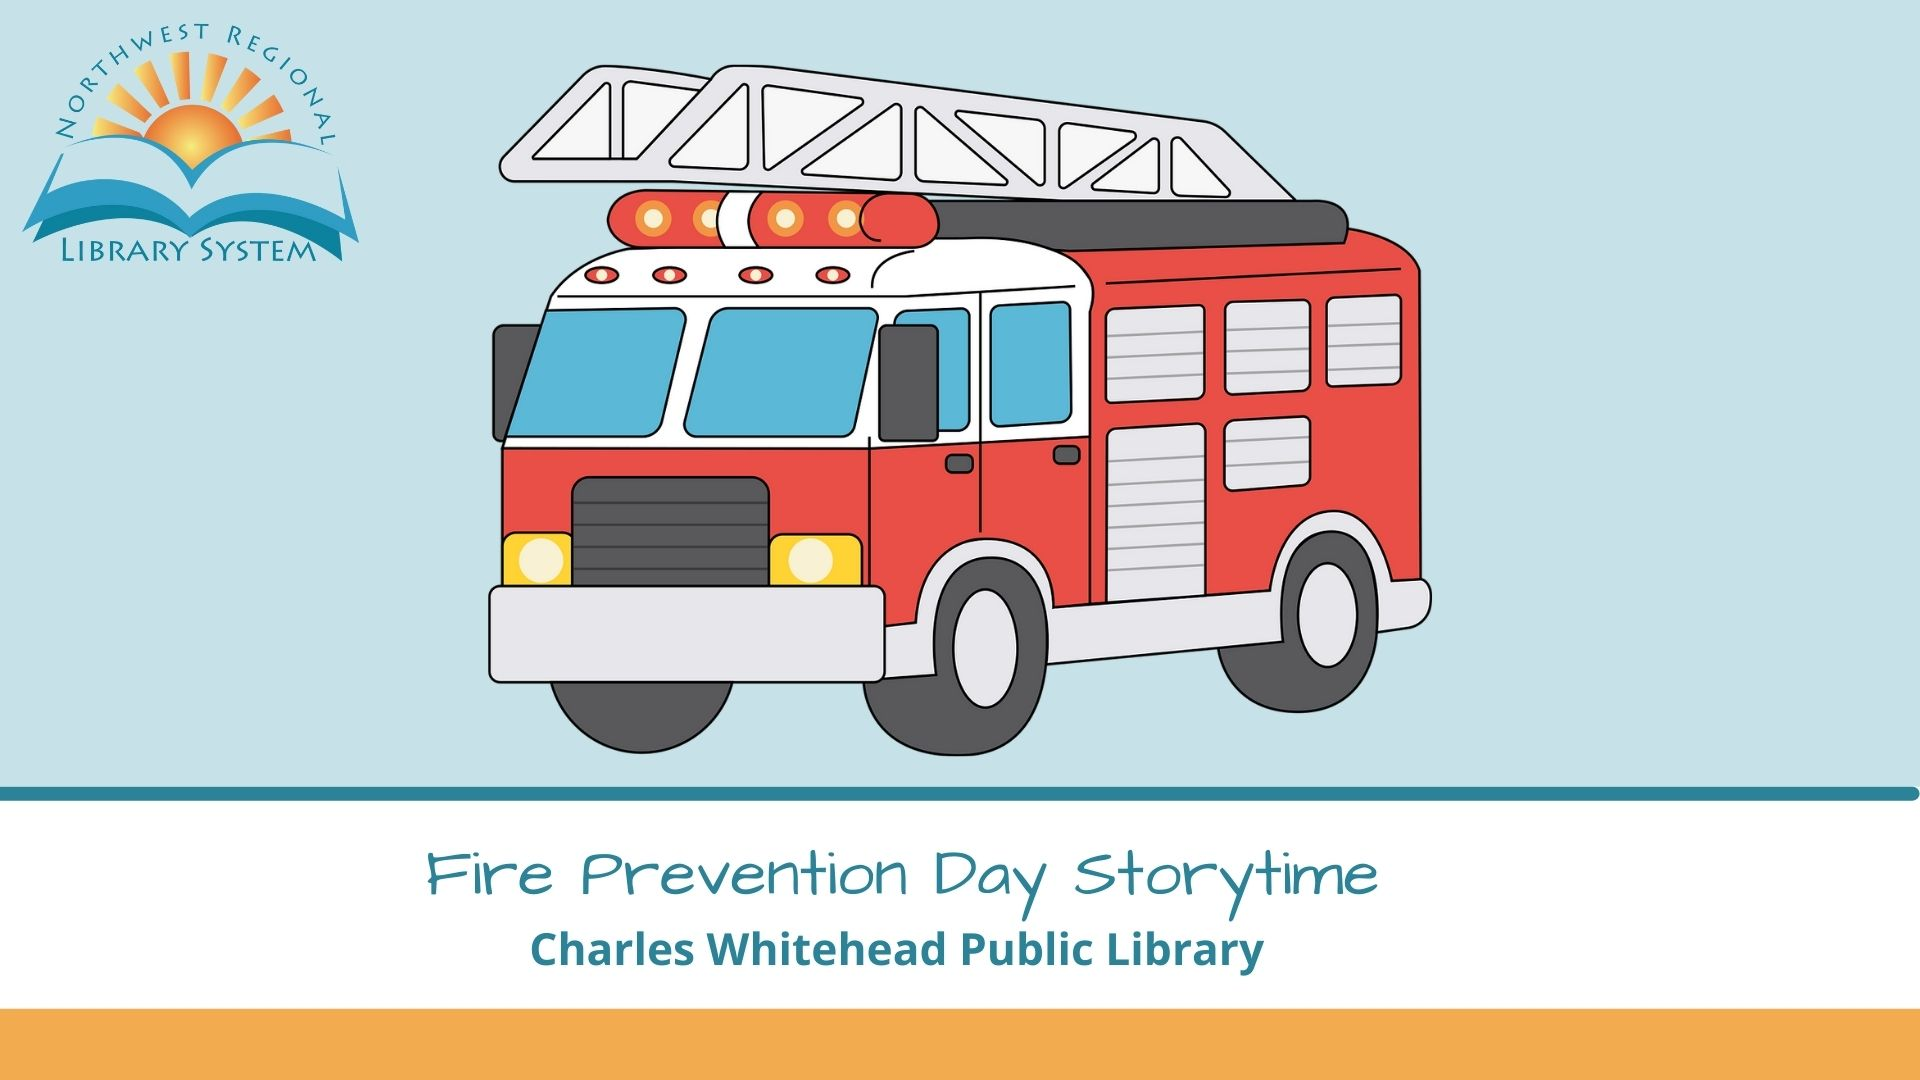 Fire Prevention Day Storytime with image of a red firetruck